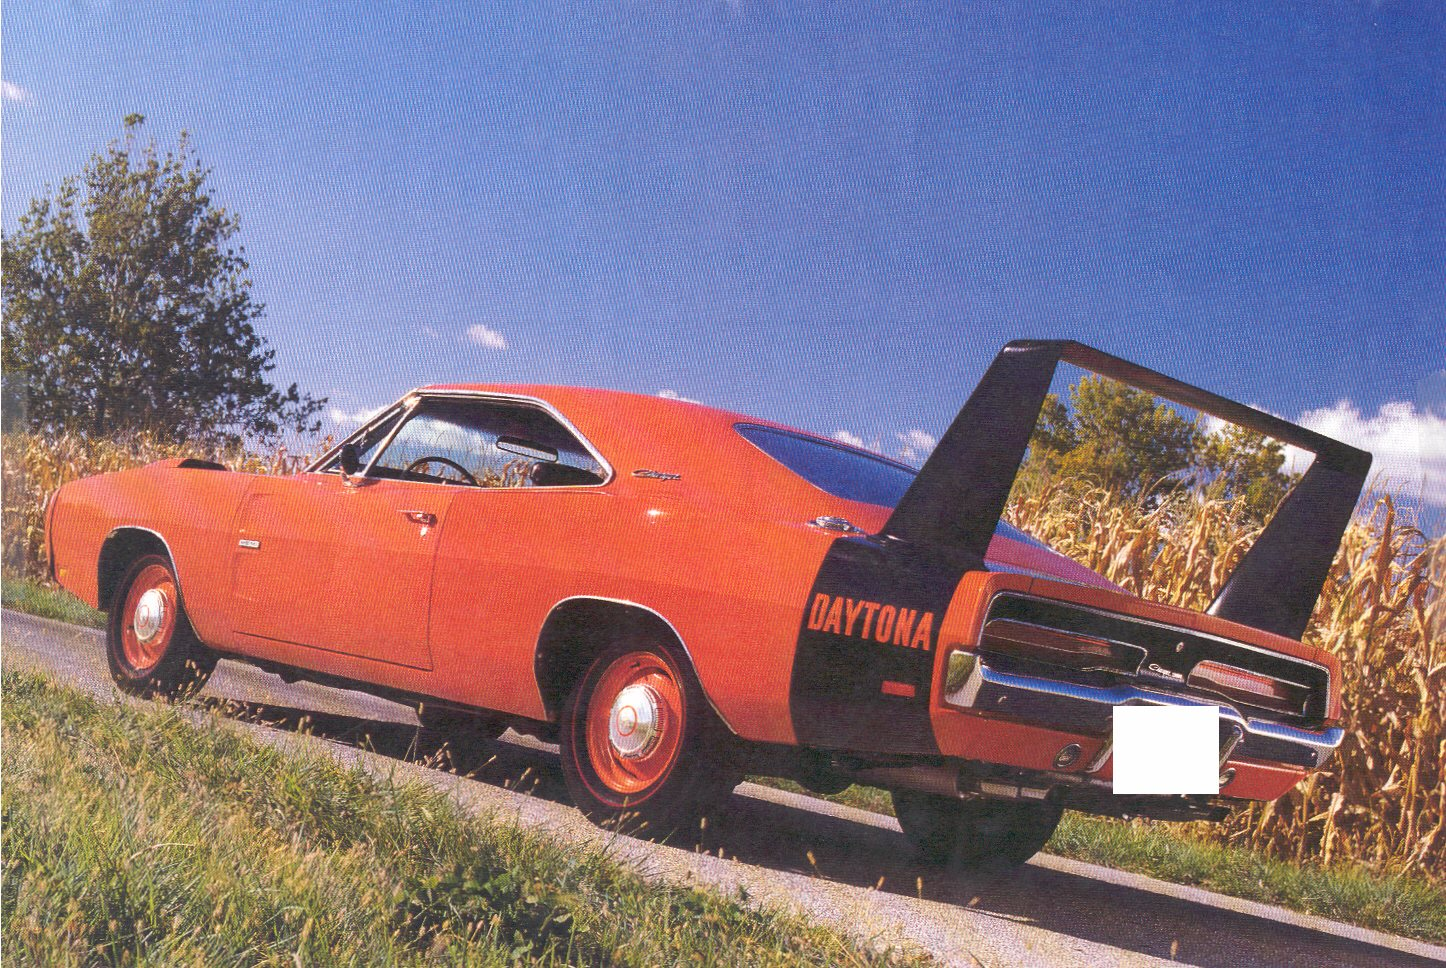 Peter's 1971 Dodge Charger R/T